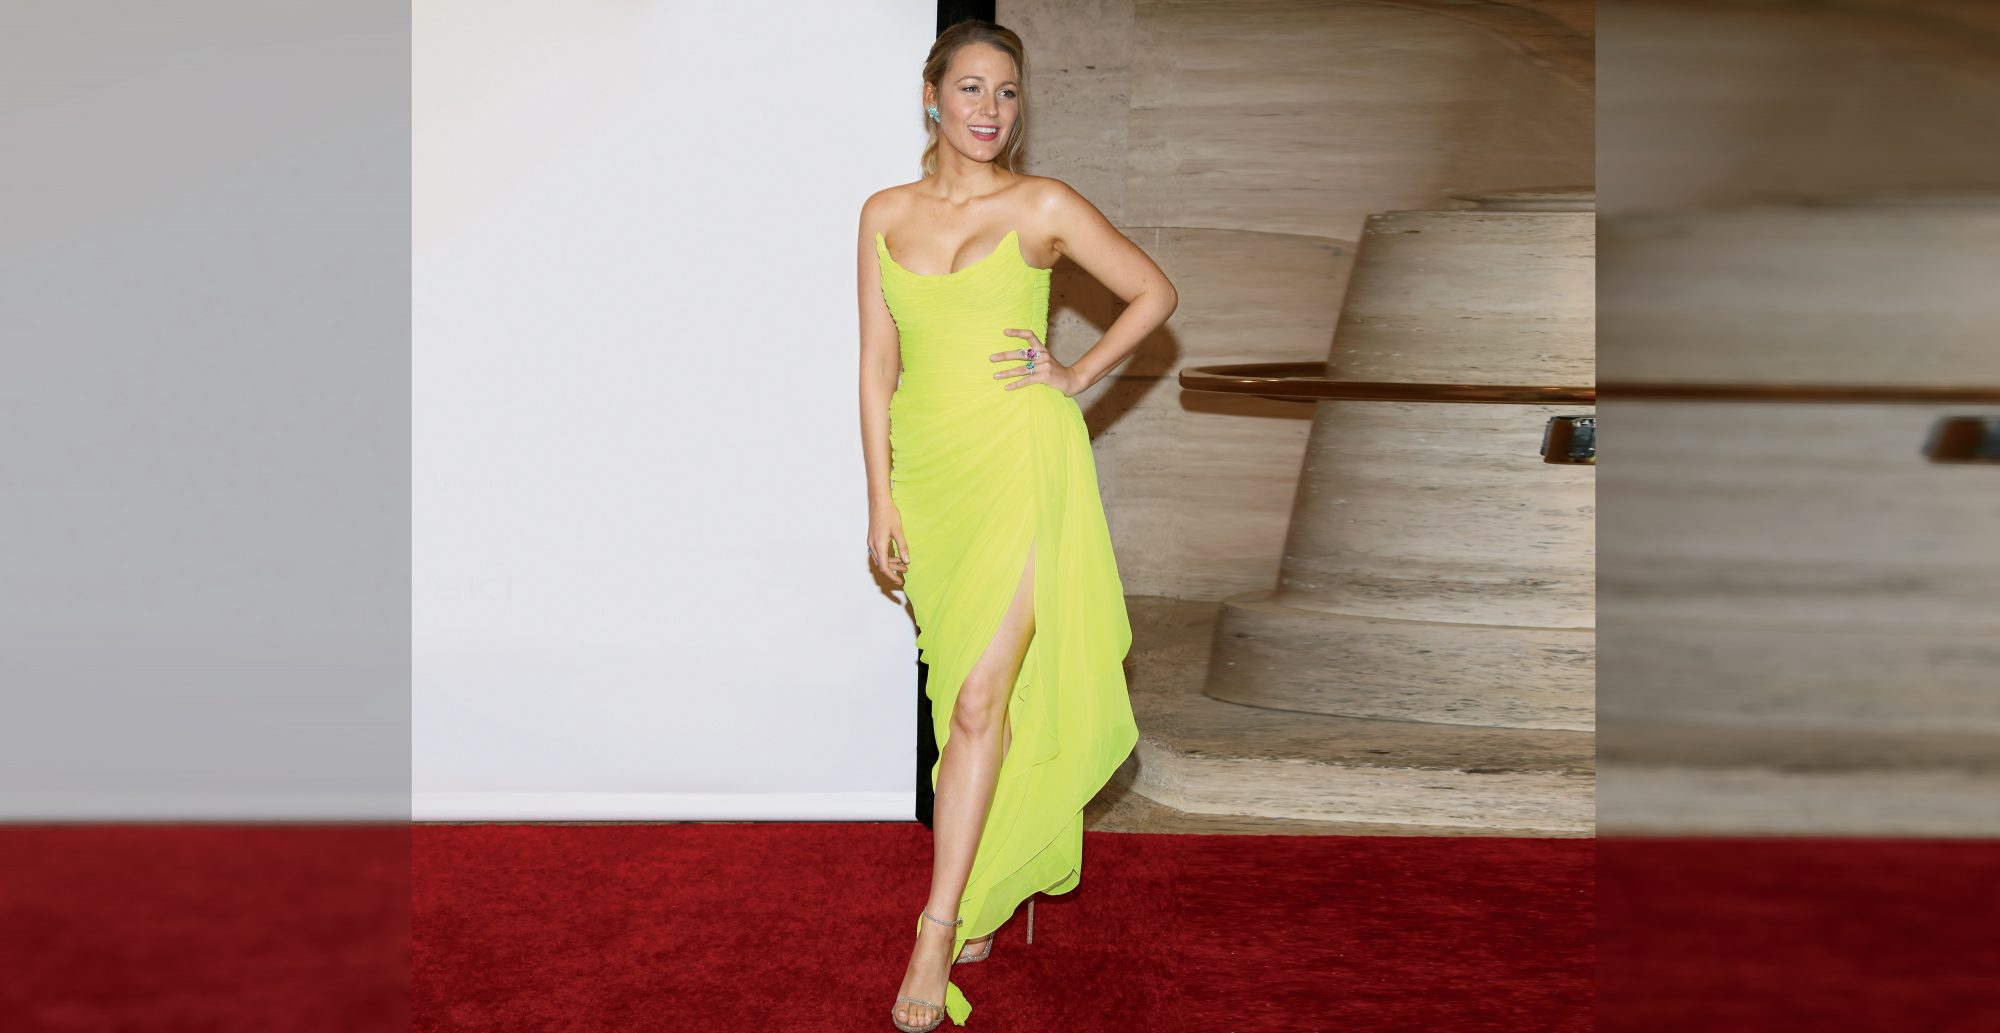 Blake Lively Wore a Dress and Heels to the Gym and You Need to See the Photos